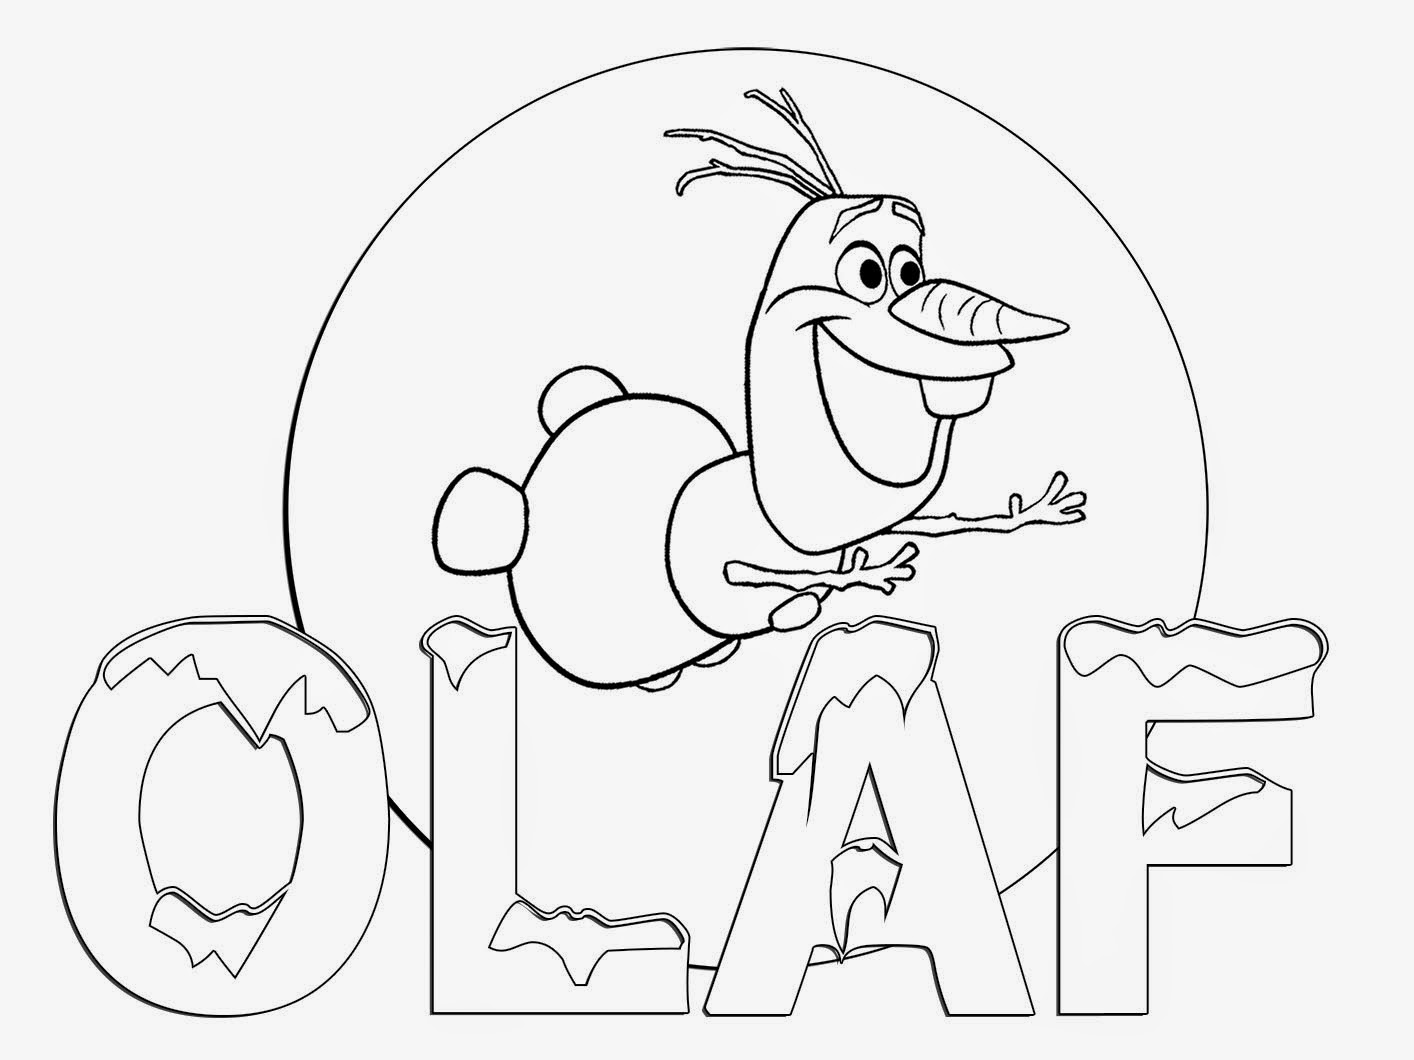 coloring pages frozen september 2014 instant knowledge coloring frozen pages